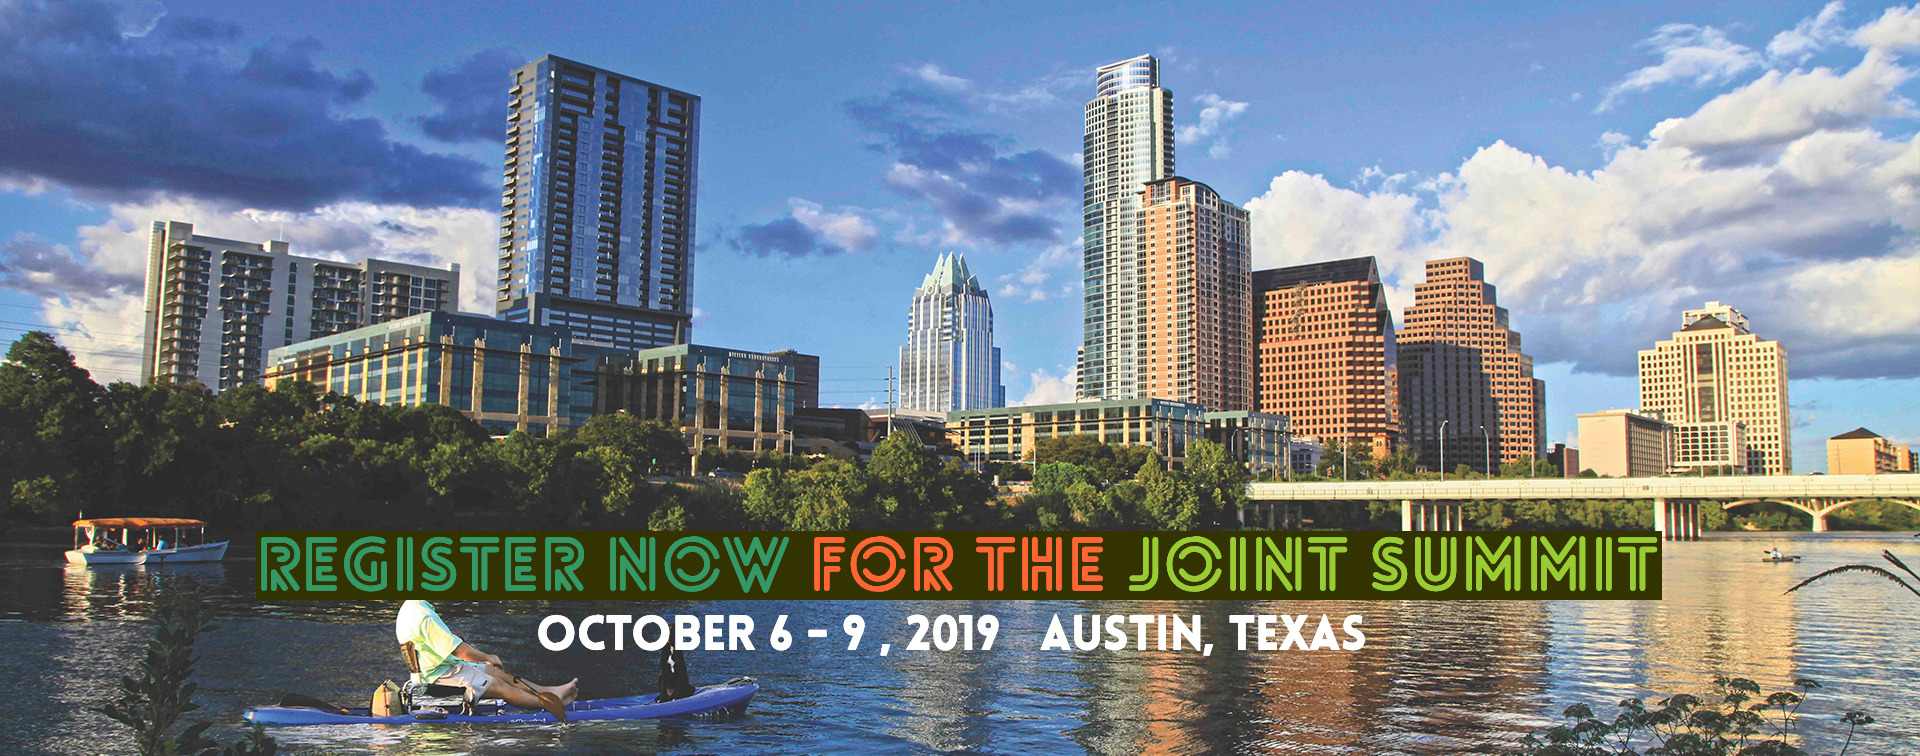 Register For The Joint Summit